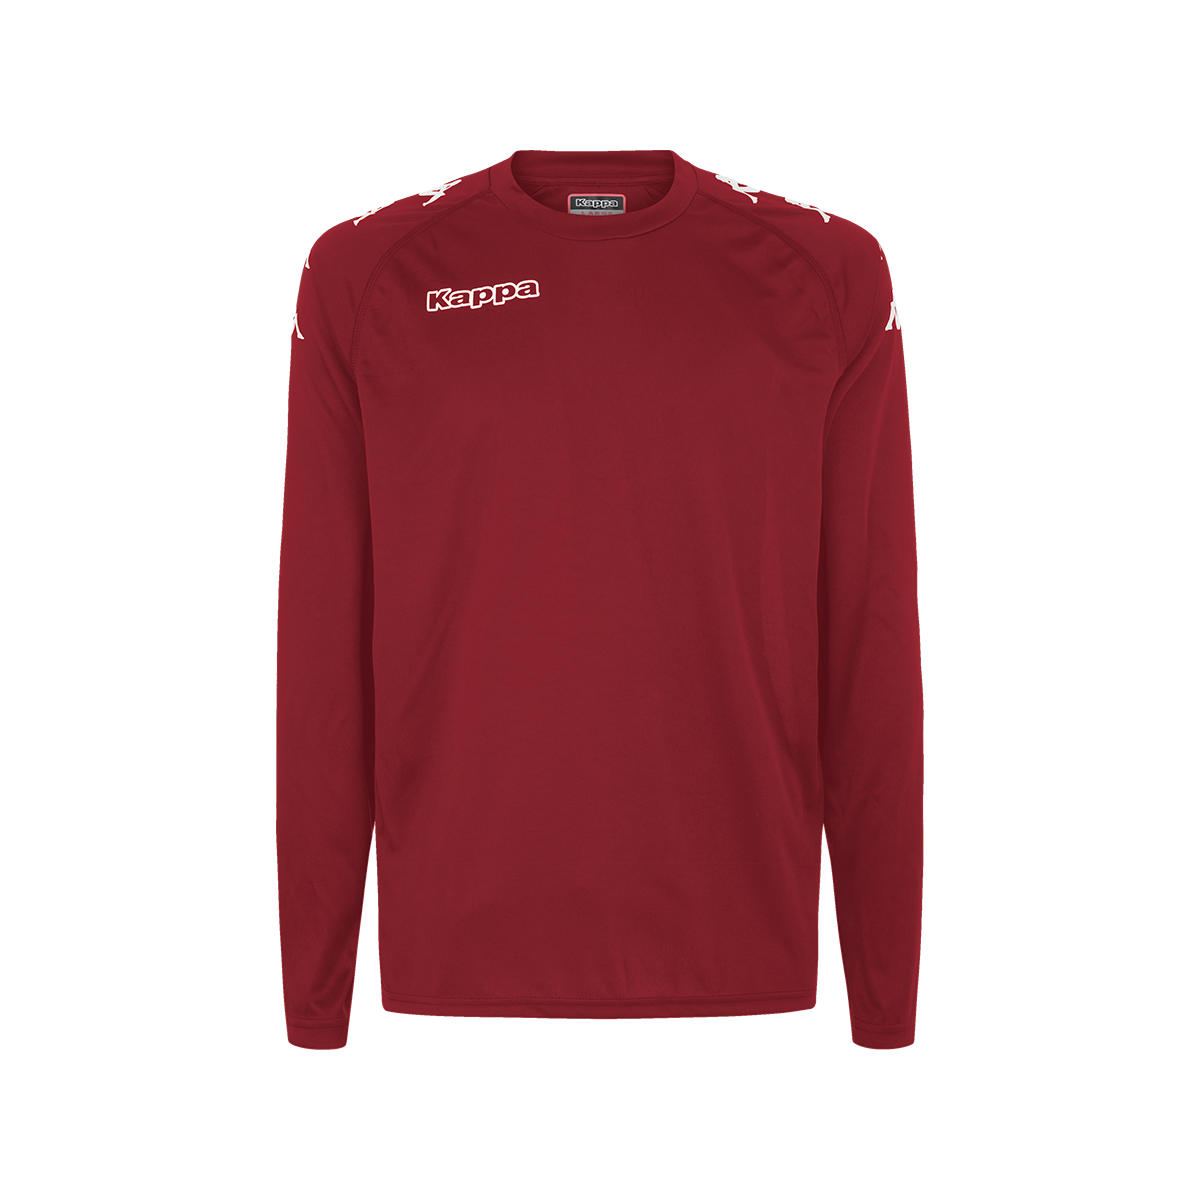 Kappa Cinanda Match Shirt LS - Red Grenade